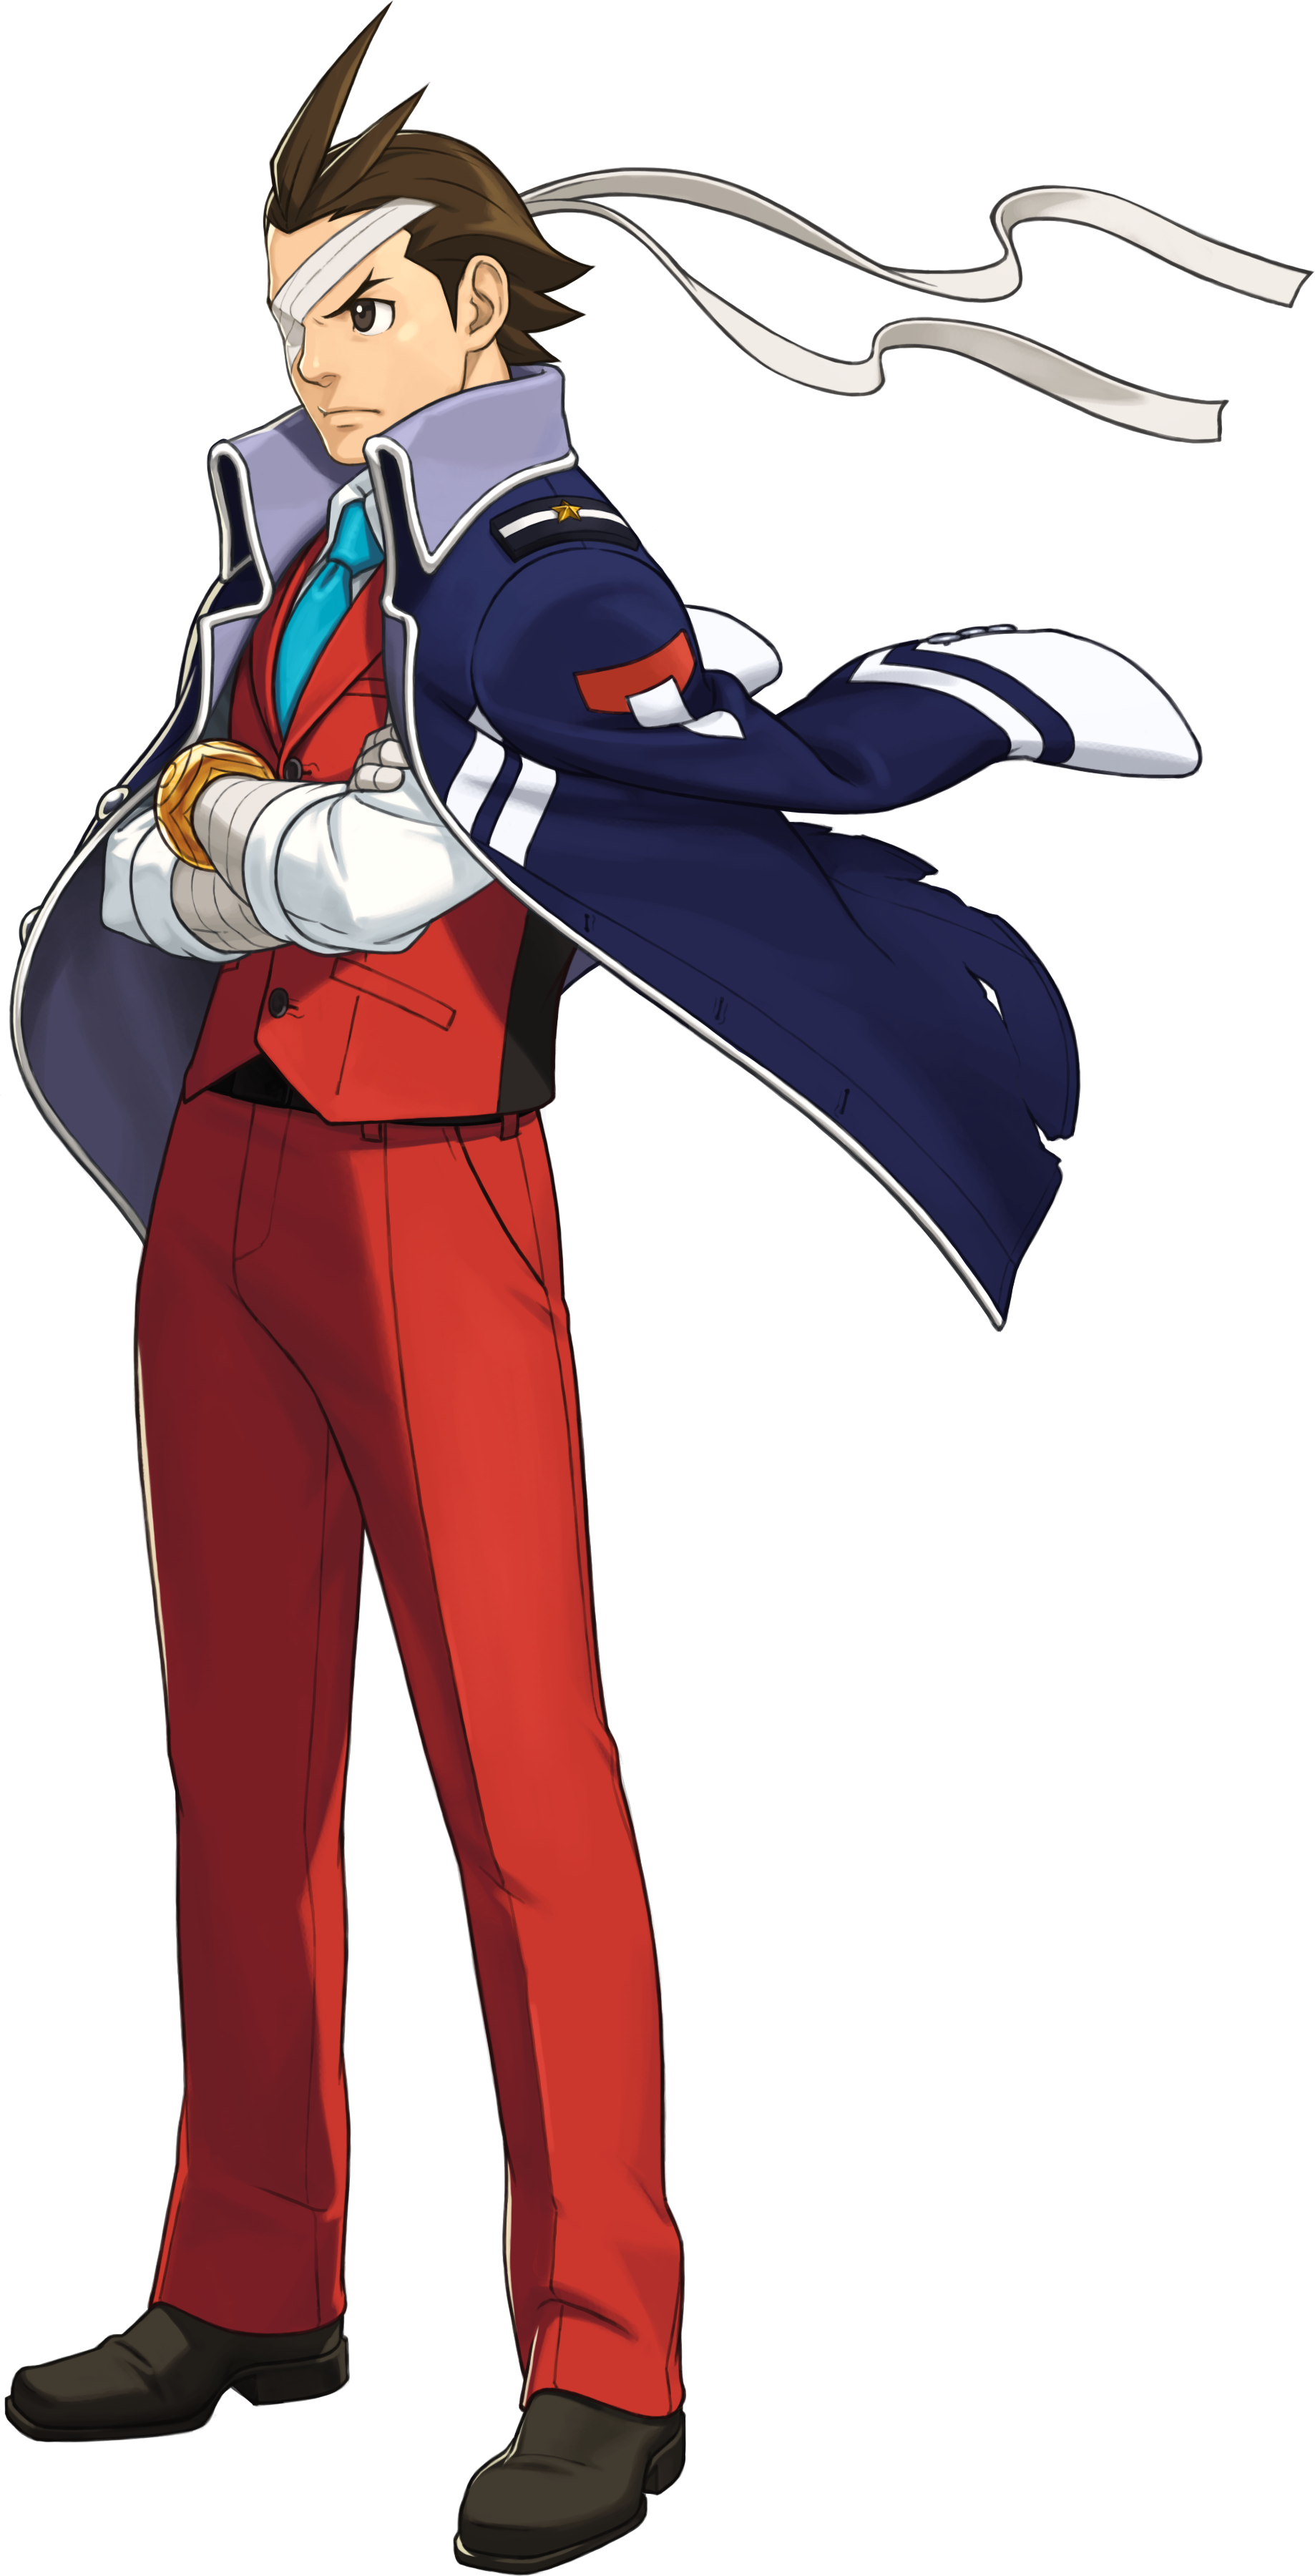 Apollo character giant bomb. Justice clipart prosecutor